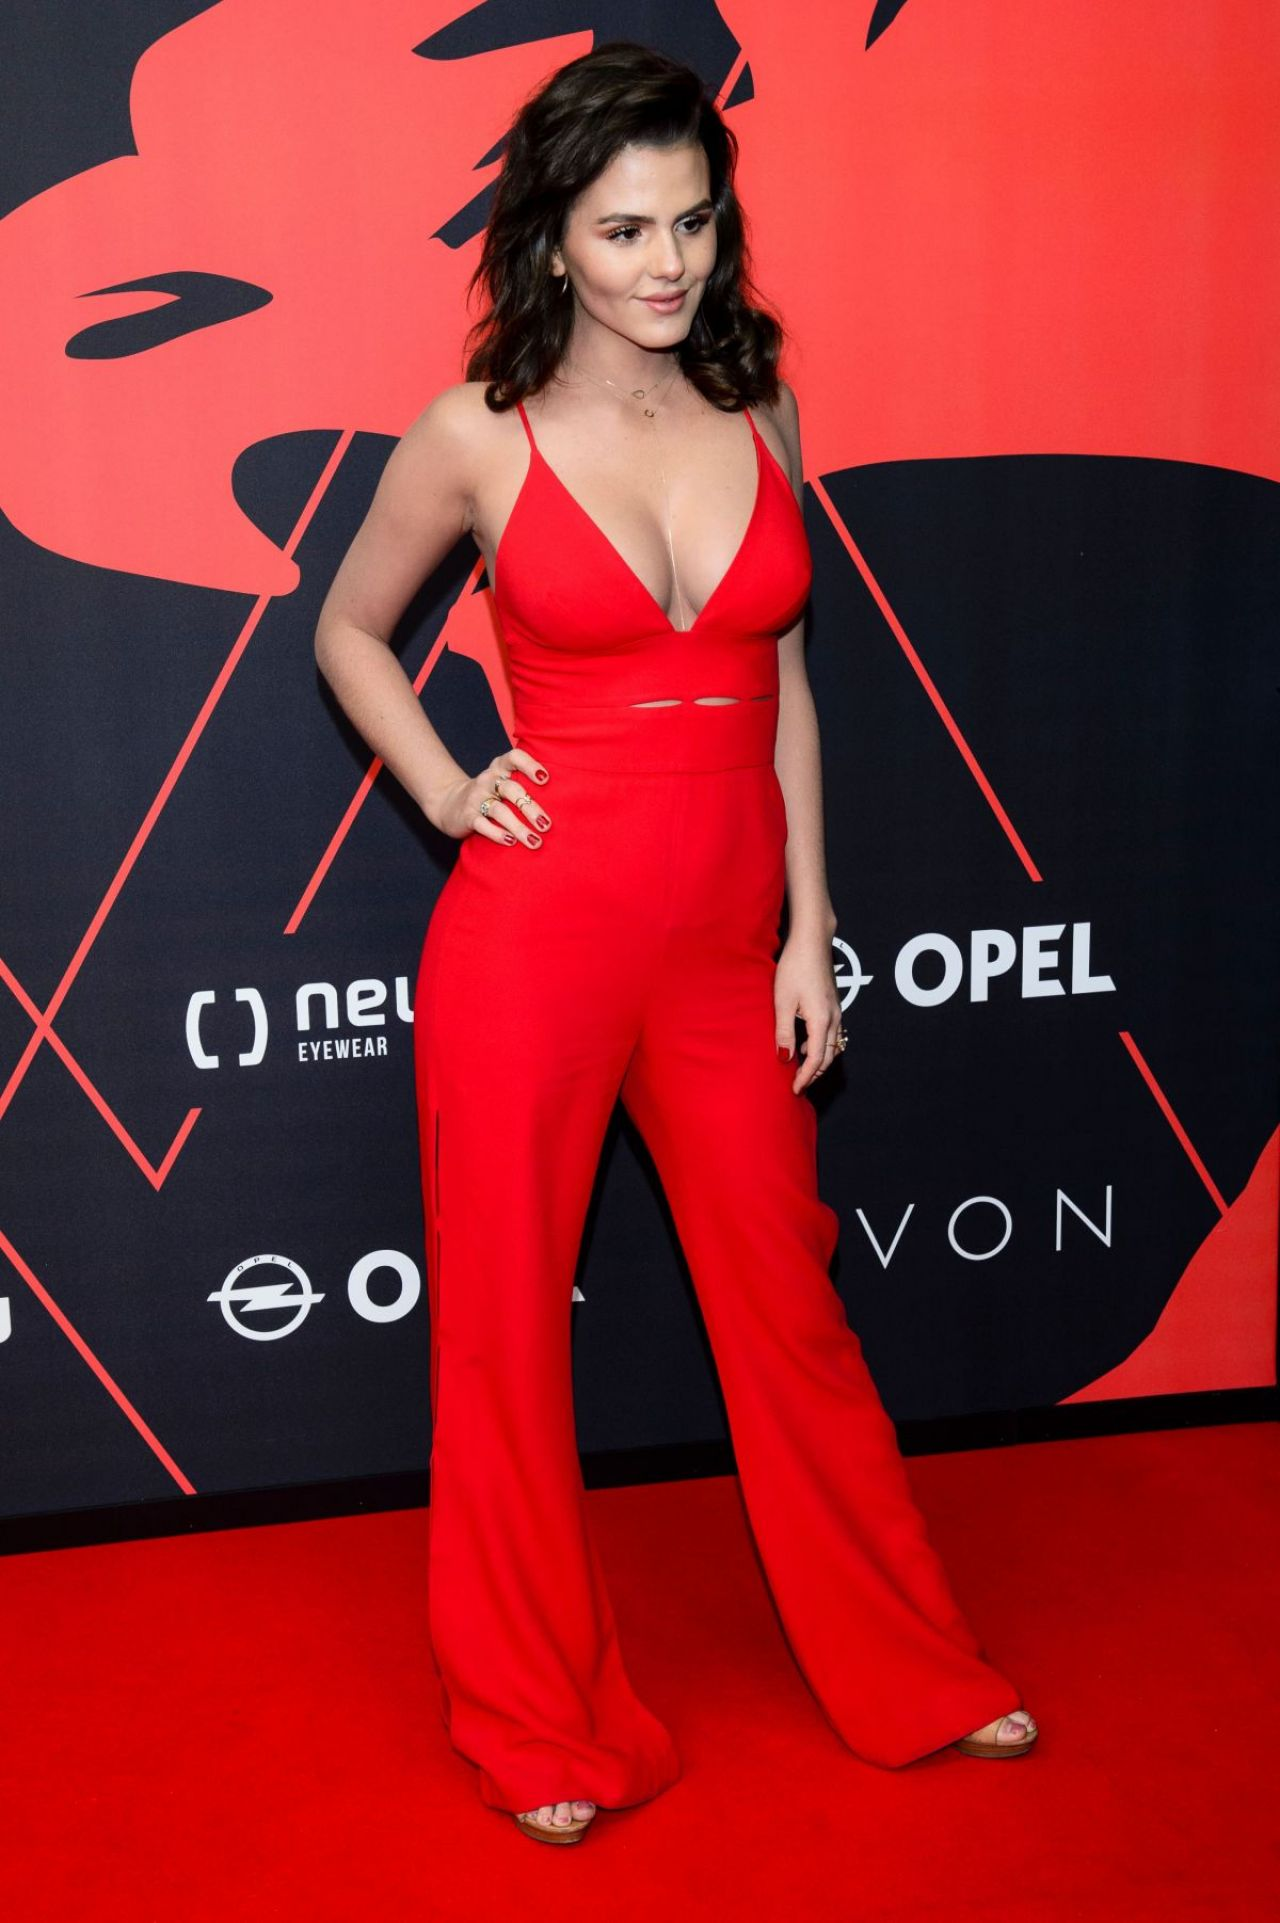 Ruby O Fee In A Tight Red Suit - New Faces Film Award 2017 In Berlin-8900